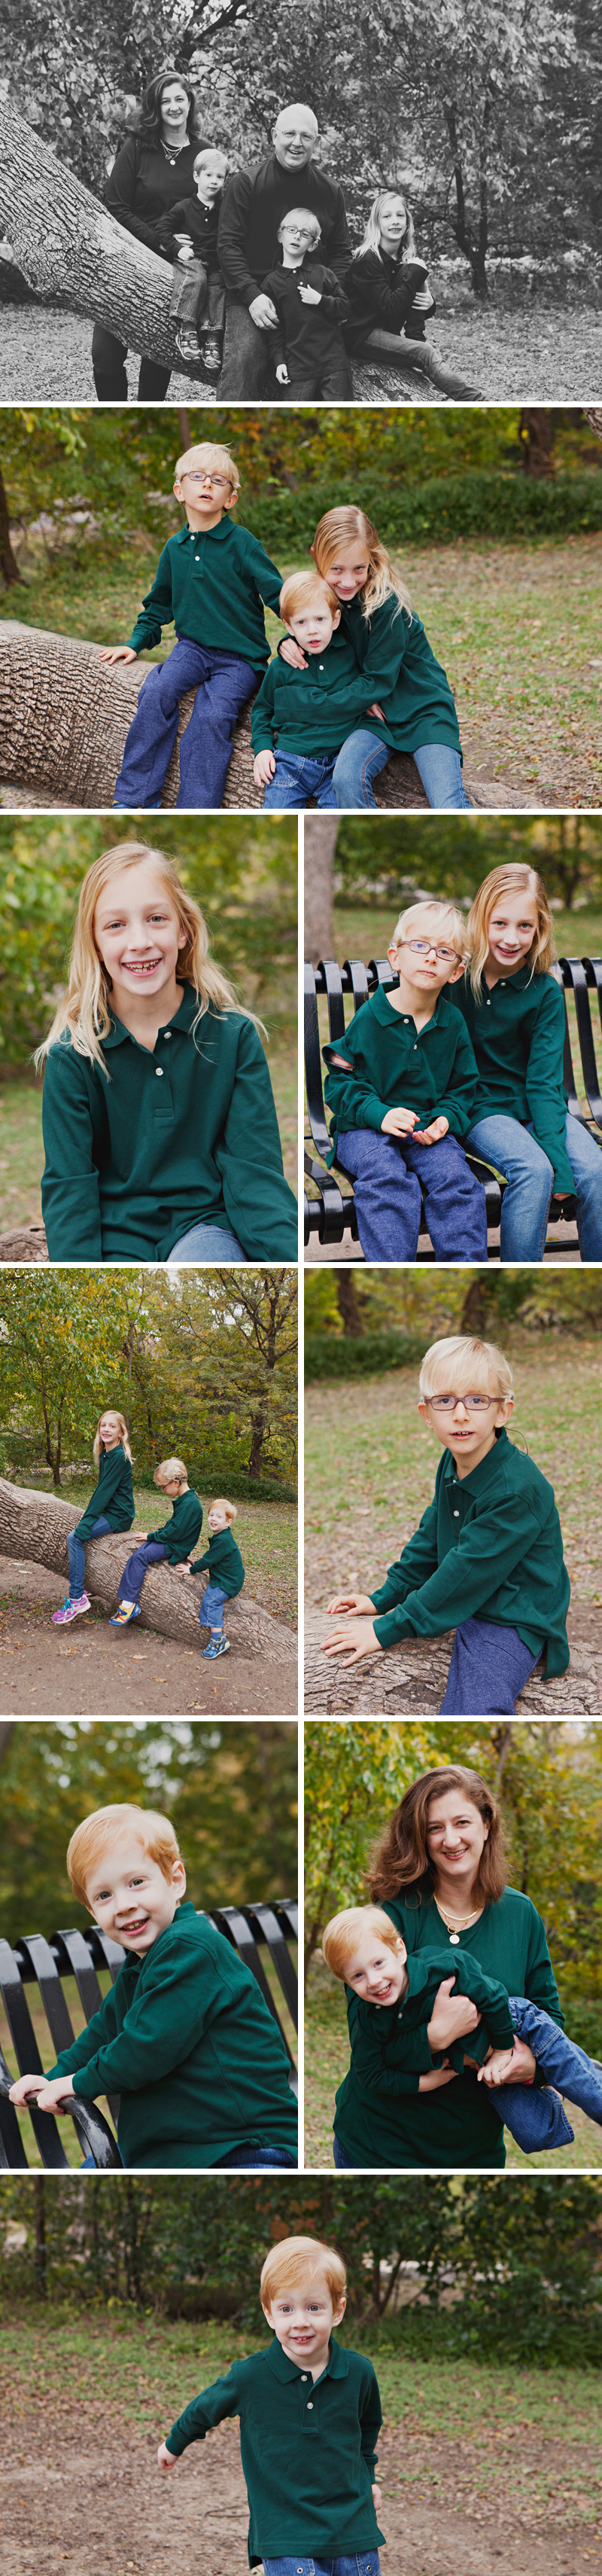 Dallas-Family-Photographerc046